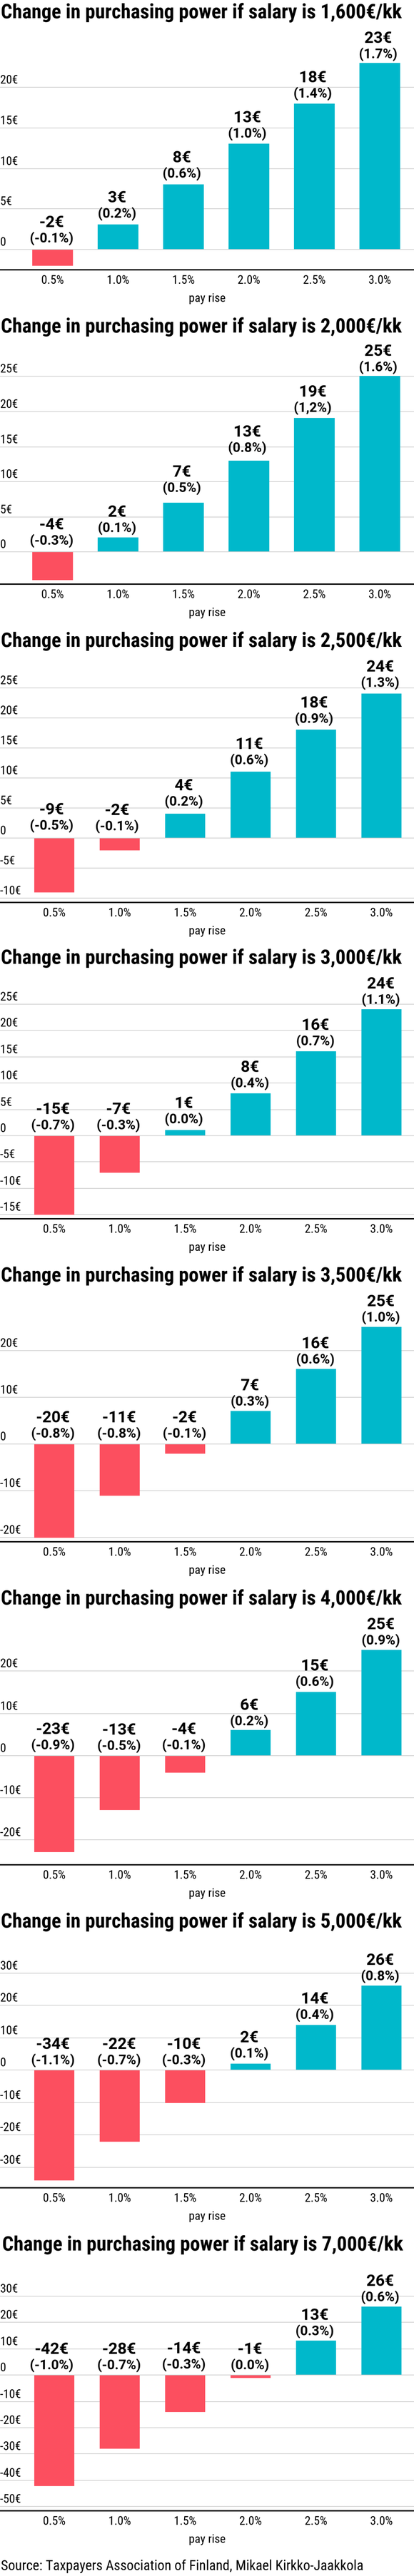 Change in purchasing power